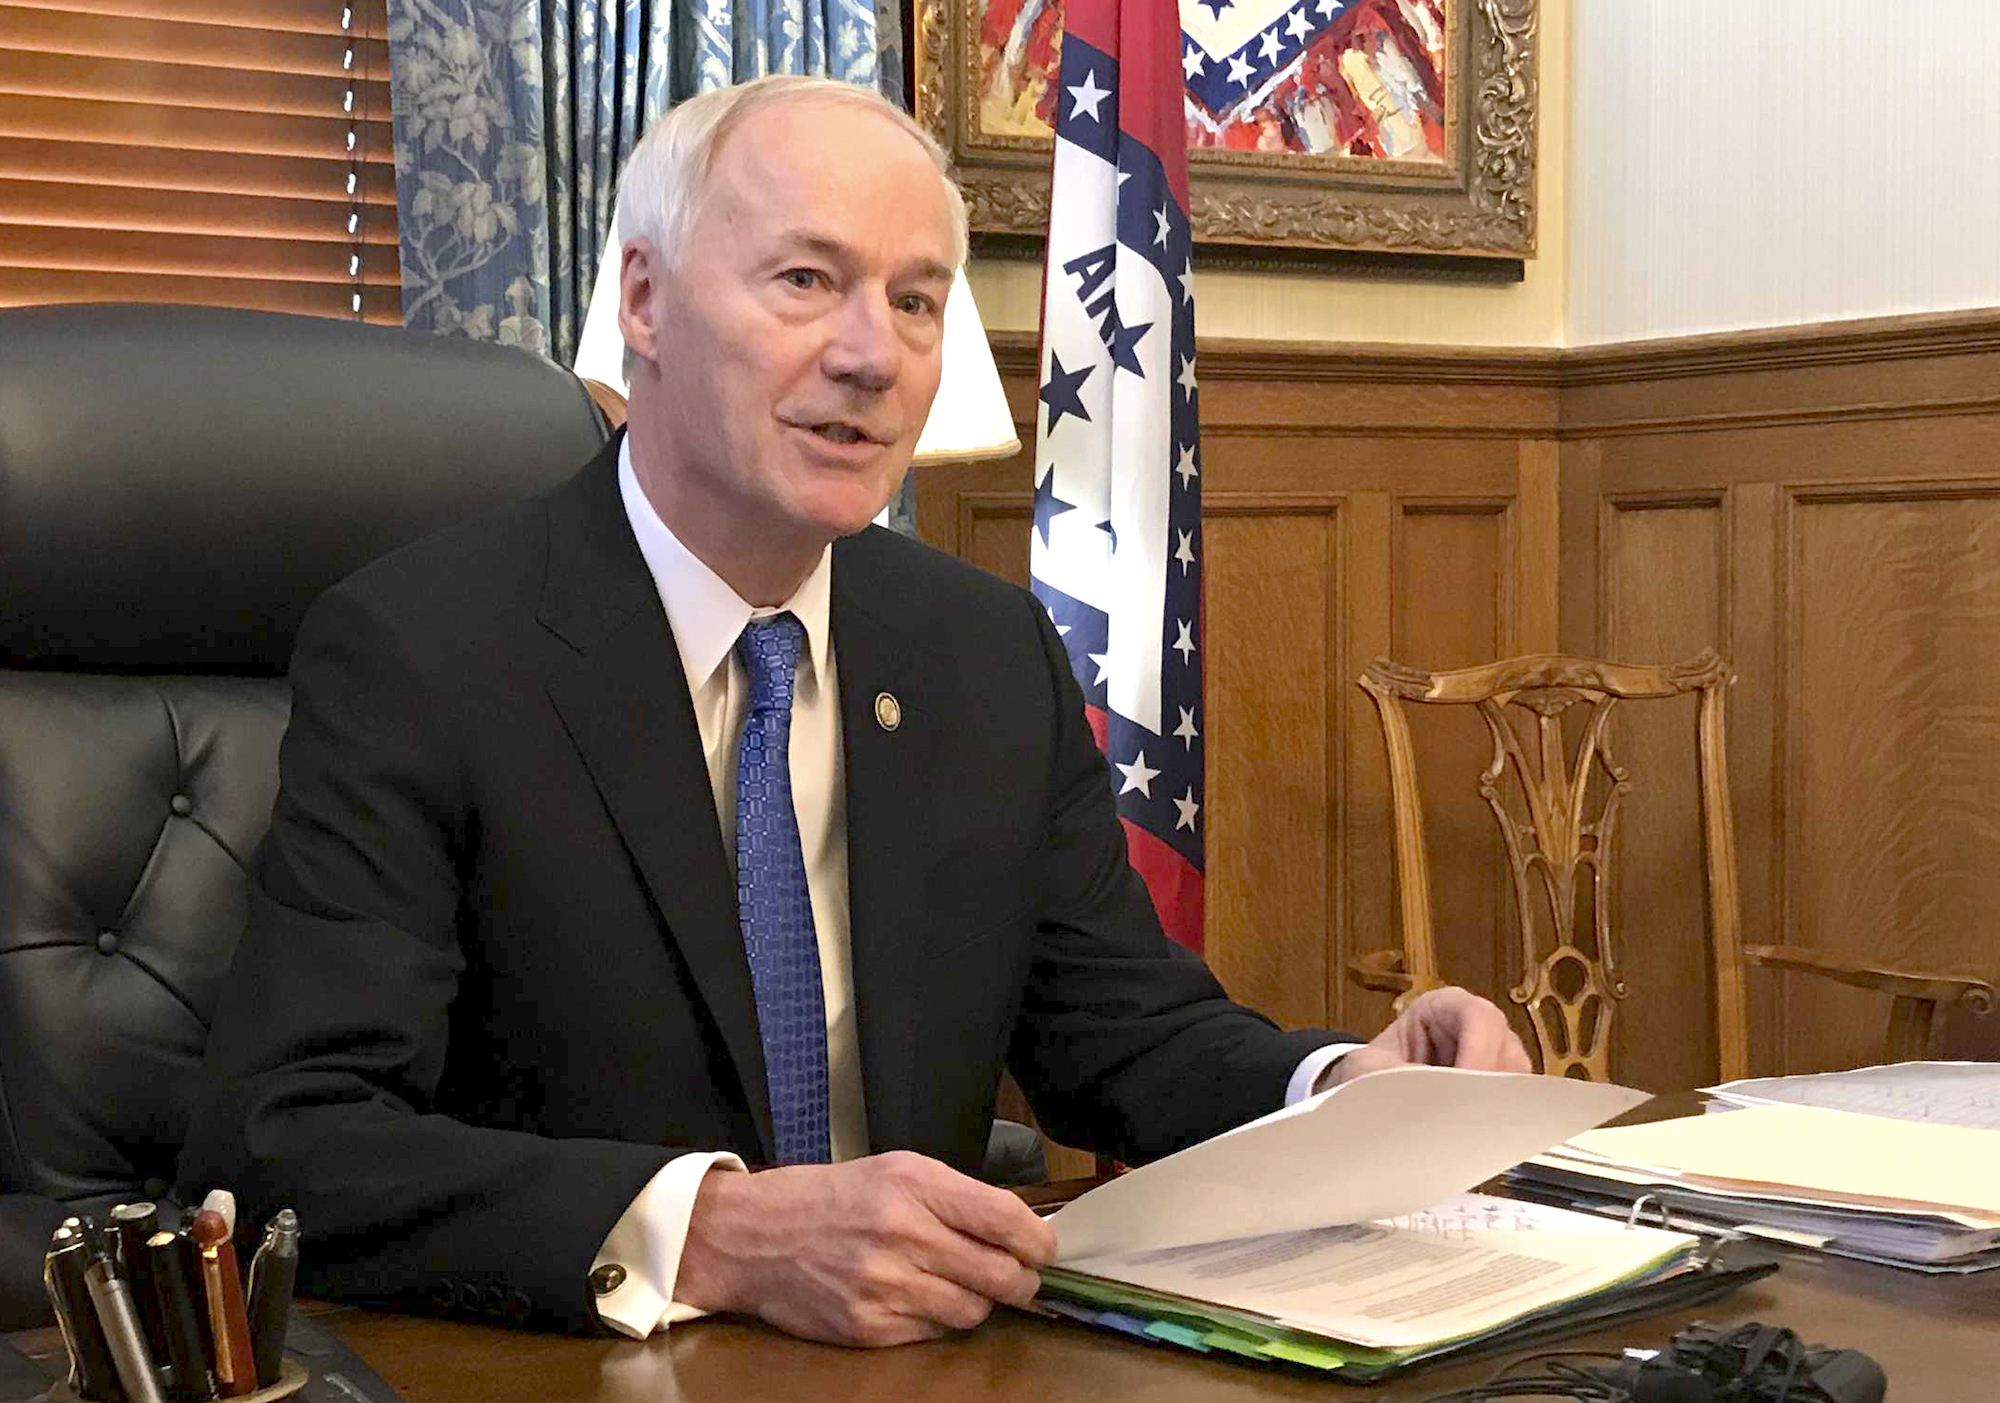 Arkansas Gov. Asa Hutchinson signs medical conscience objections bill allowing doctors to refuse to treat anyone on religious or moral grounds